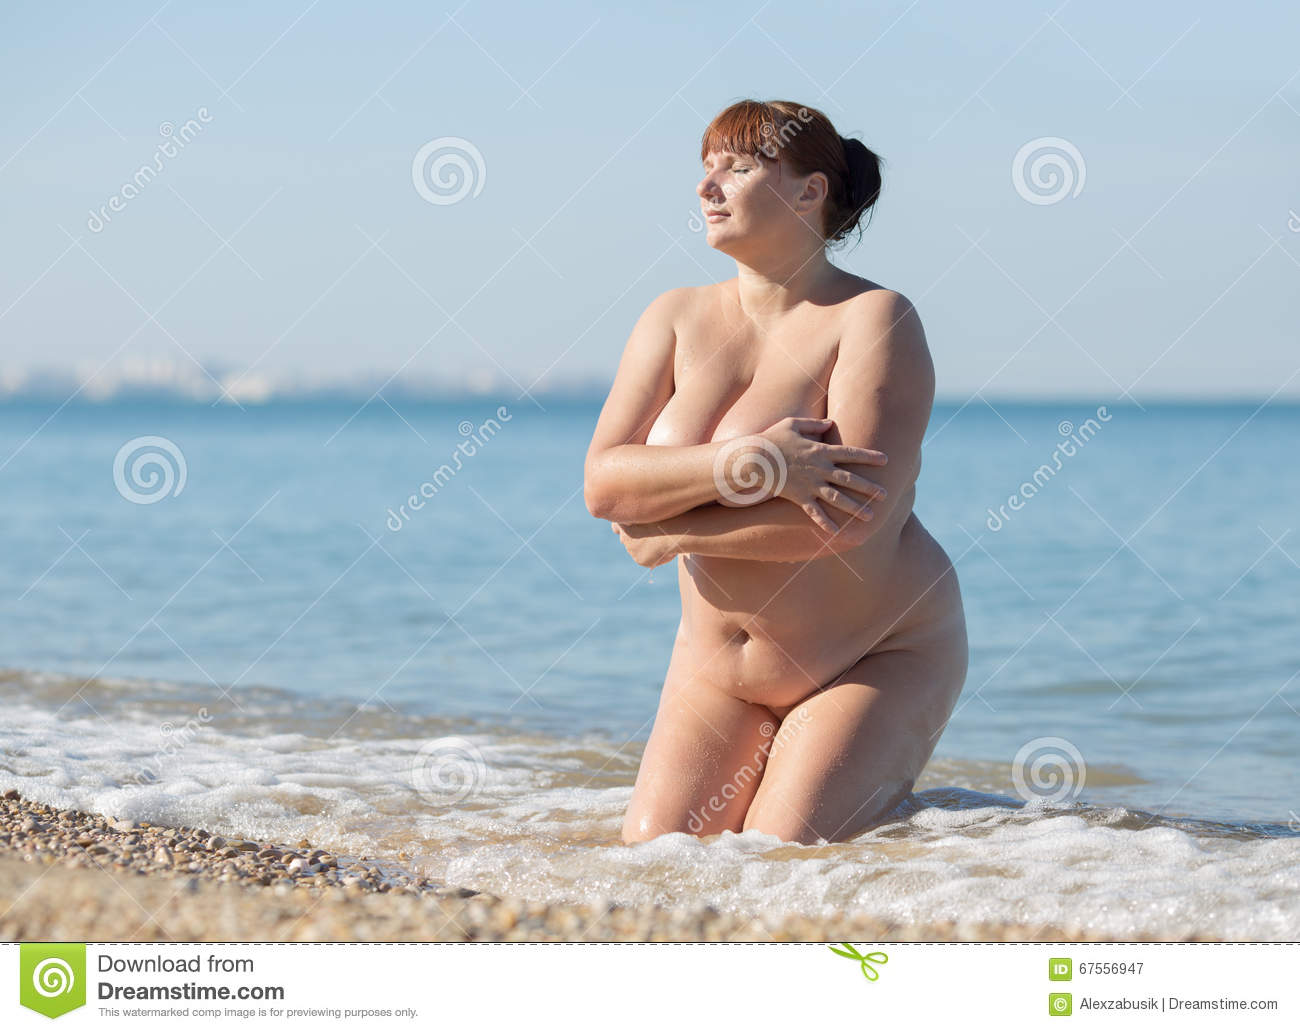 Overwieght woman naked photo